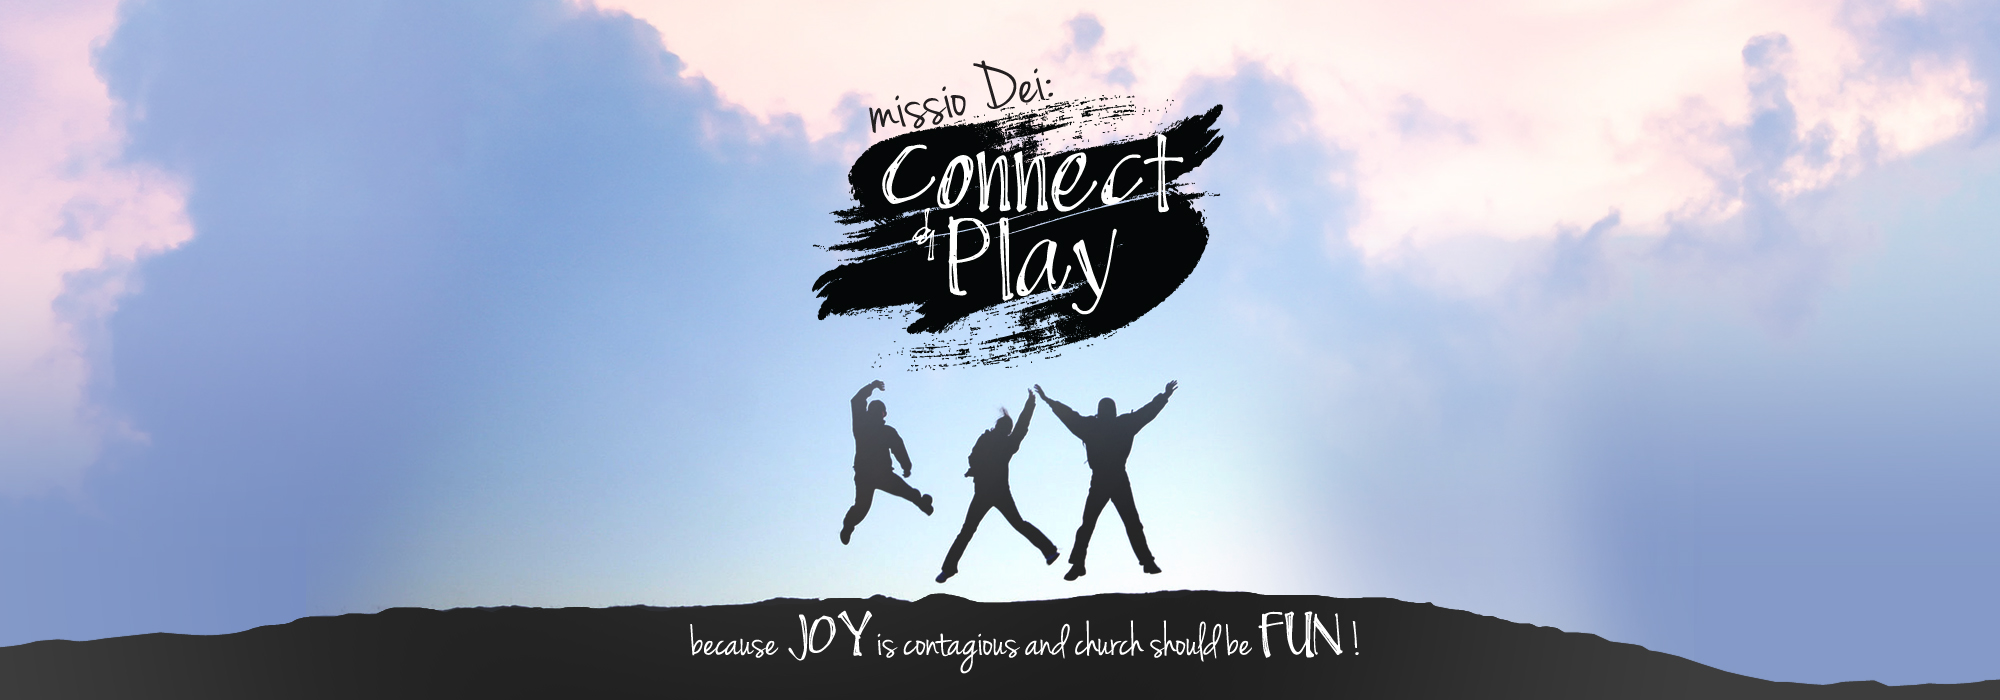 Connect and Play…because joy is contagious and church should be fun!